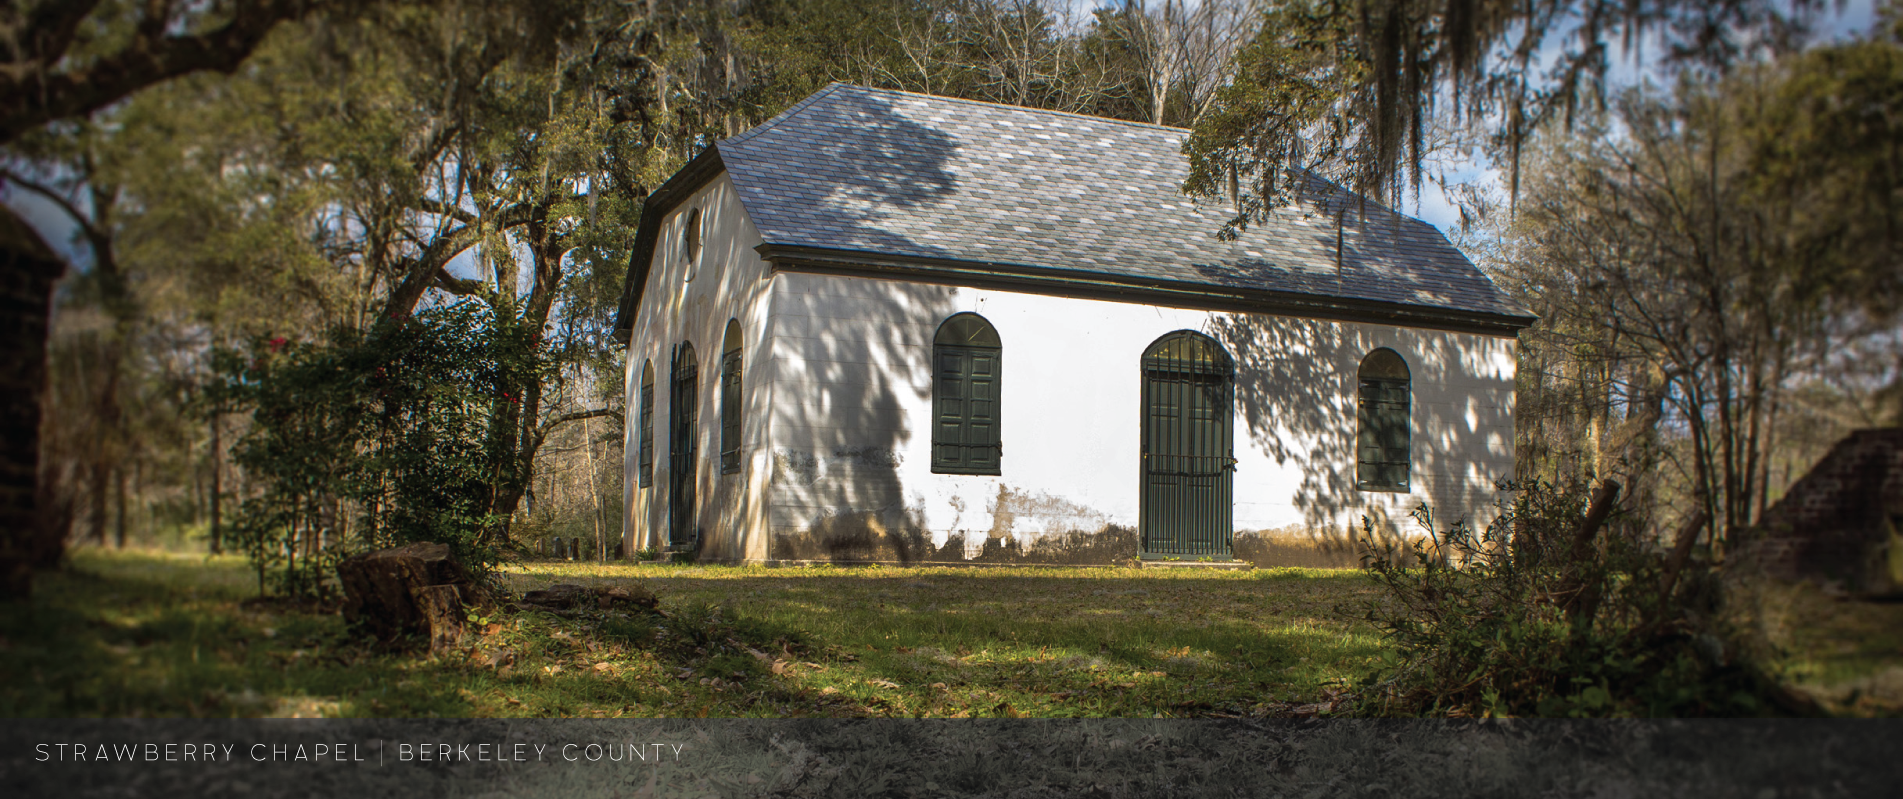 Berkeley-County-with-Text_Strawberry-Chapel-11